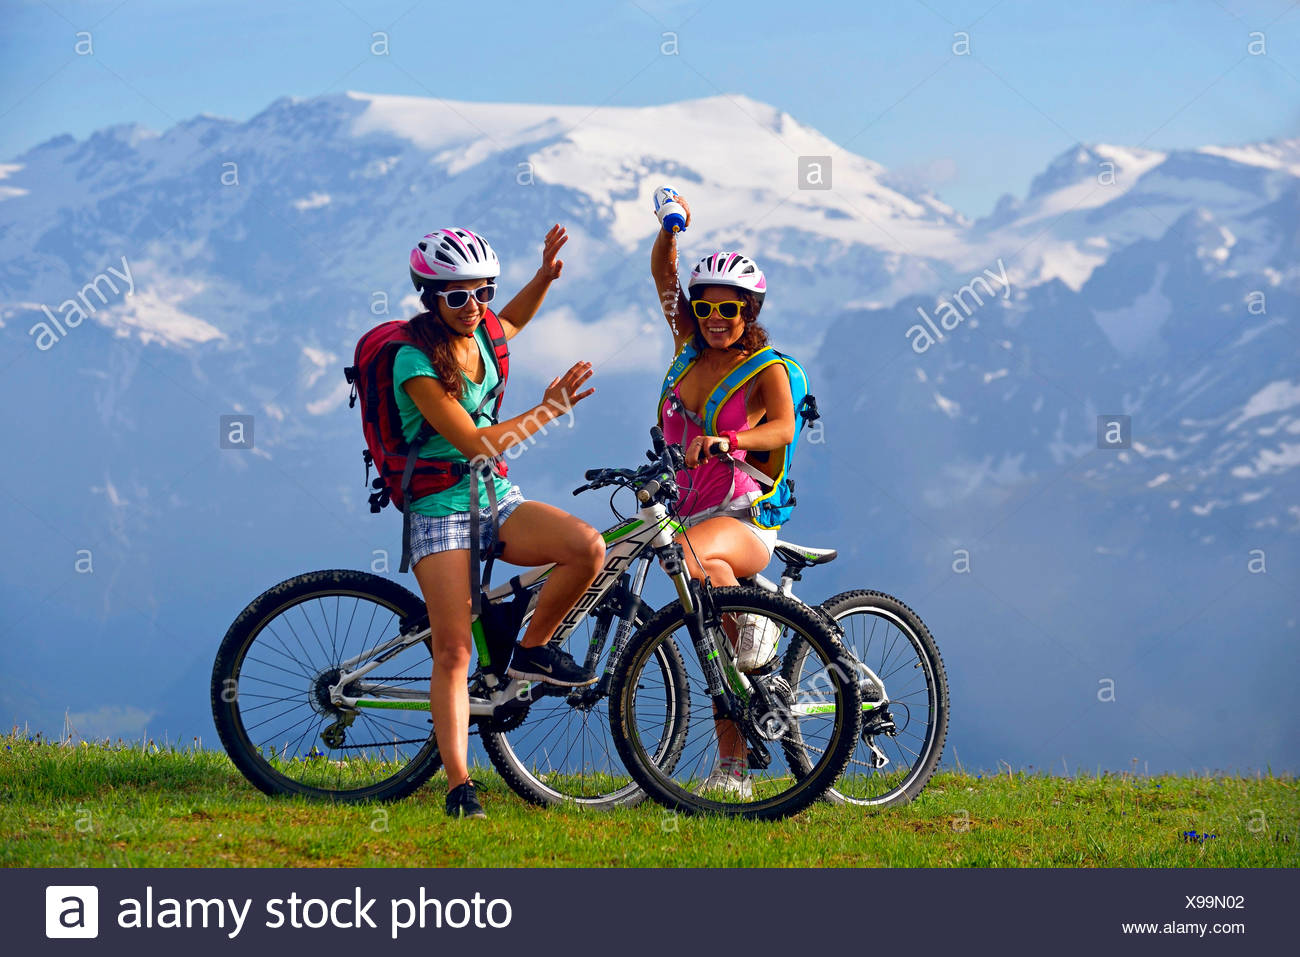 two female mountain bikers in front of mountain scenery, France, Savoie, Vanoise National Park, Champagny - Stock Image